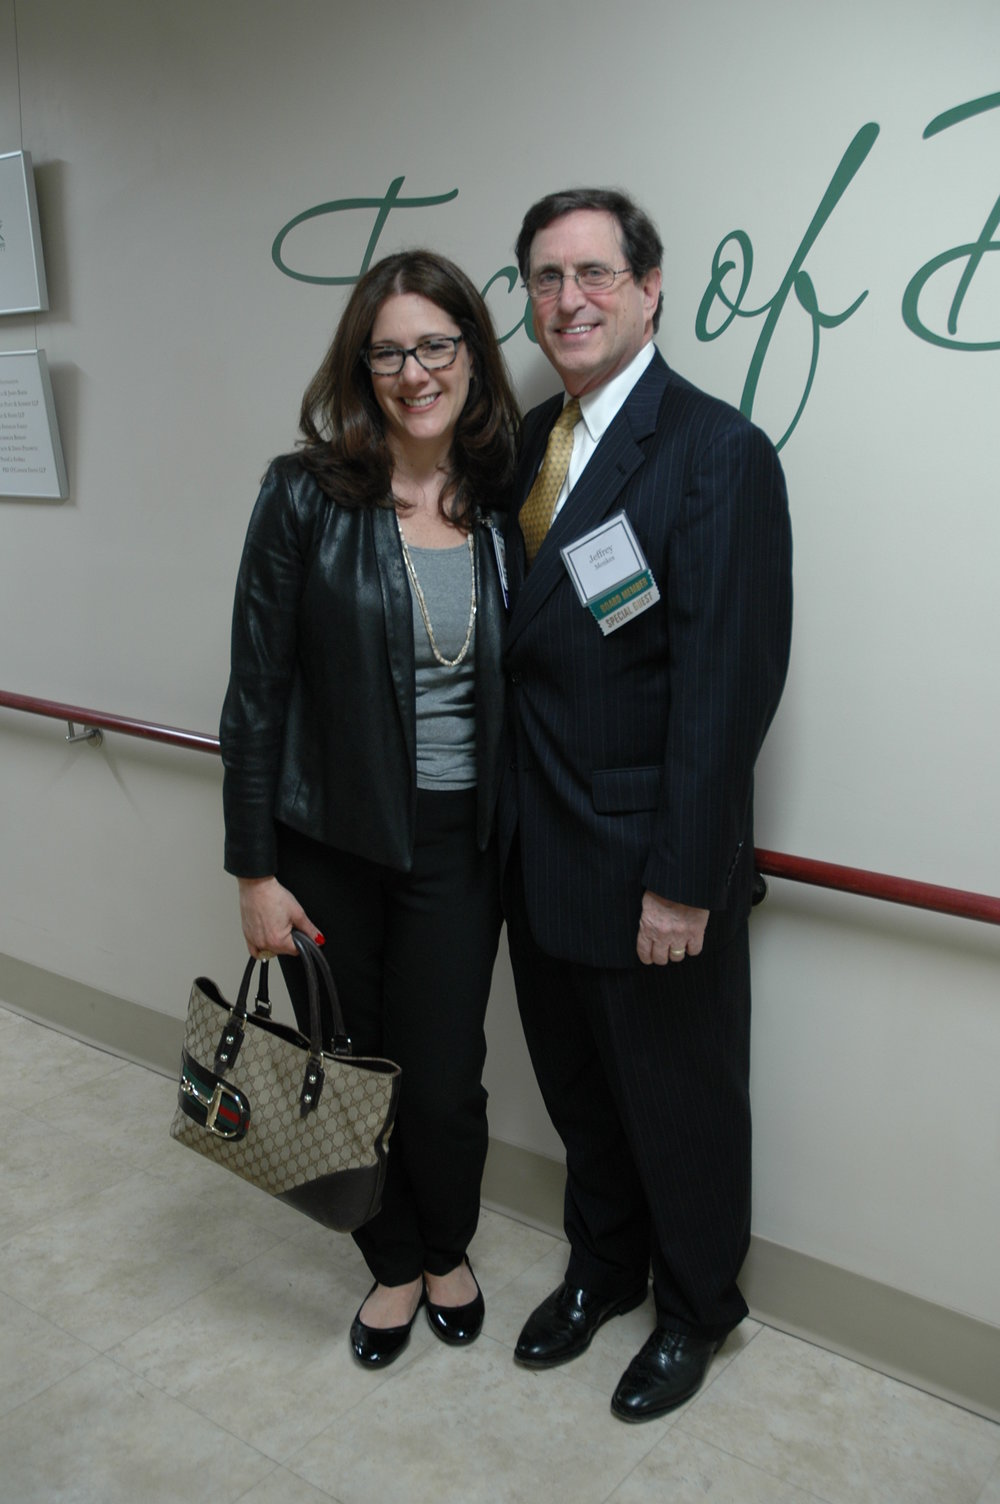 Rachelle Sanders (left), VP Chief of Development at Montefiore, standing with Jeffrey Menkes (right), President and CEO at Burke Rehabilitation